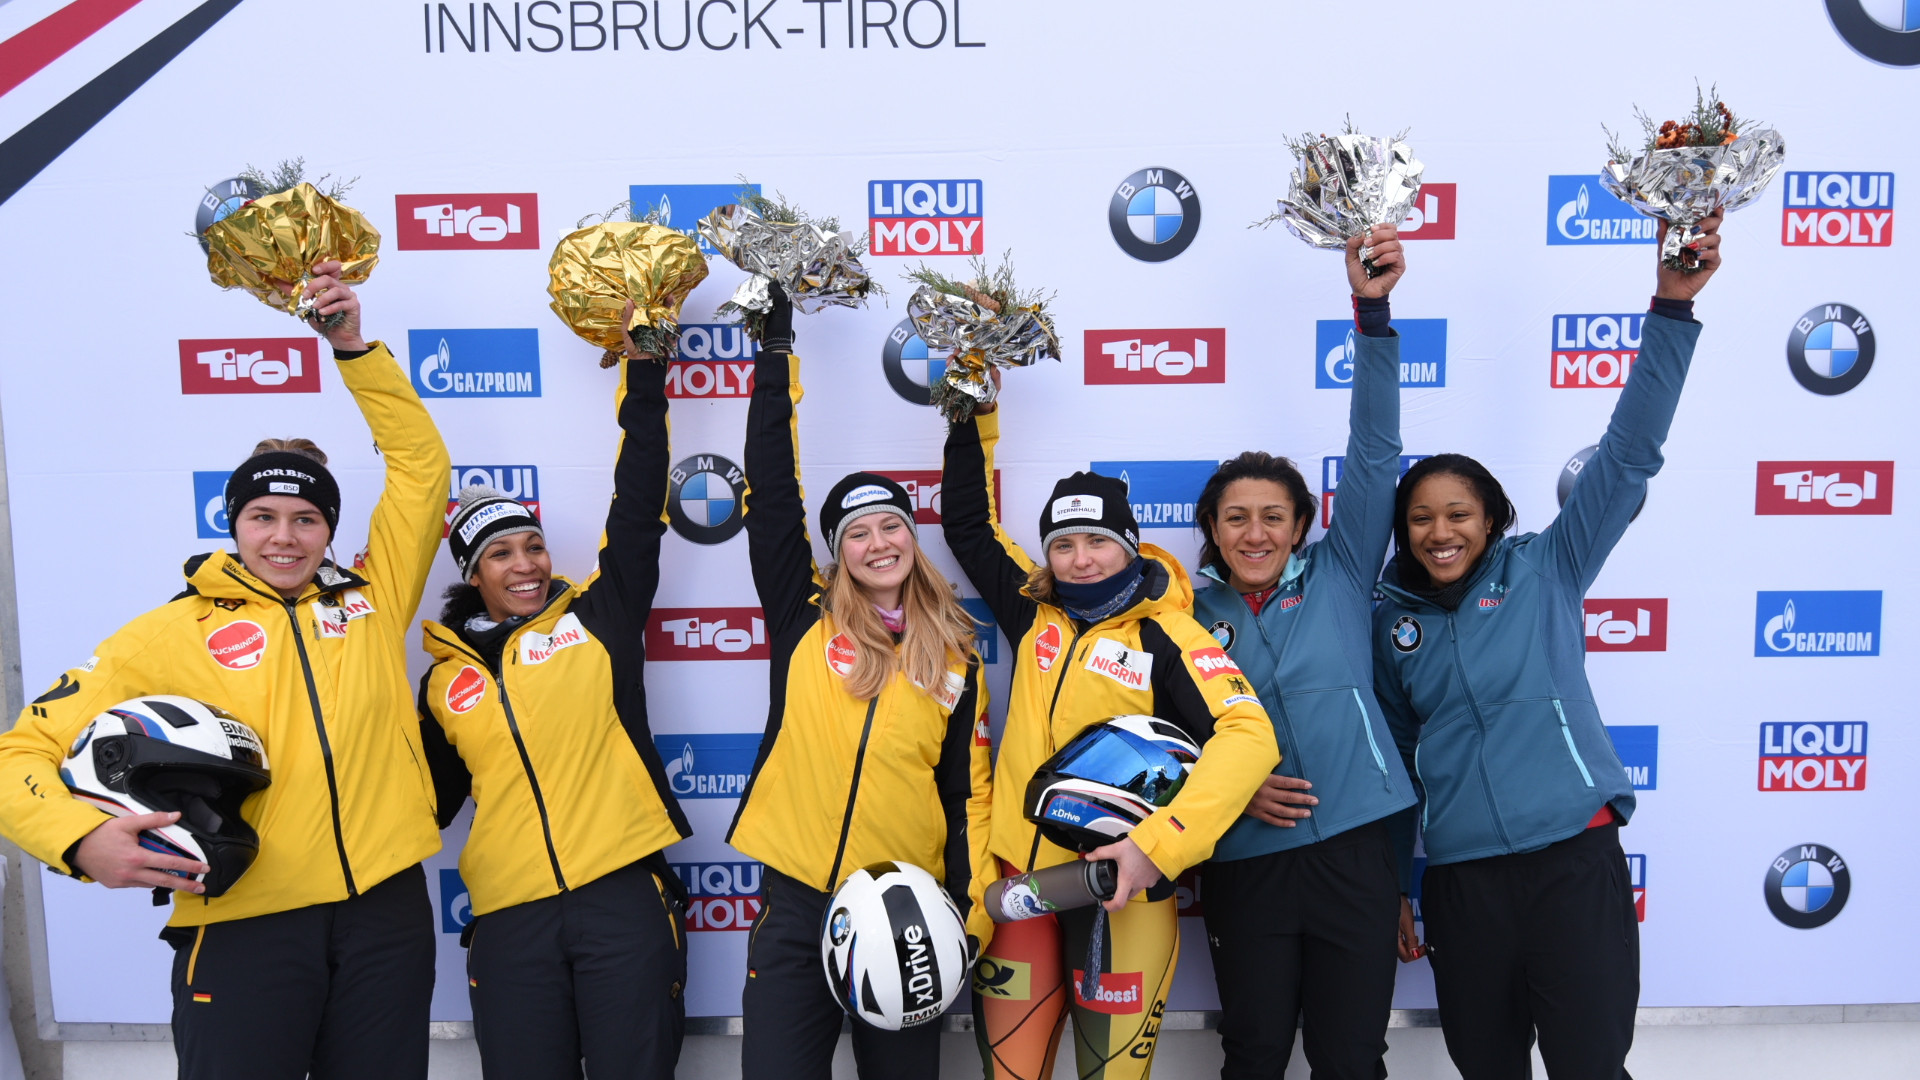 Germany's Stephanie Schneider, third right, and partner Ann-Kristin Strack top the podium at the IBSF women's bobsleigh World Cup event in Innsbruck ©IBSF